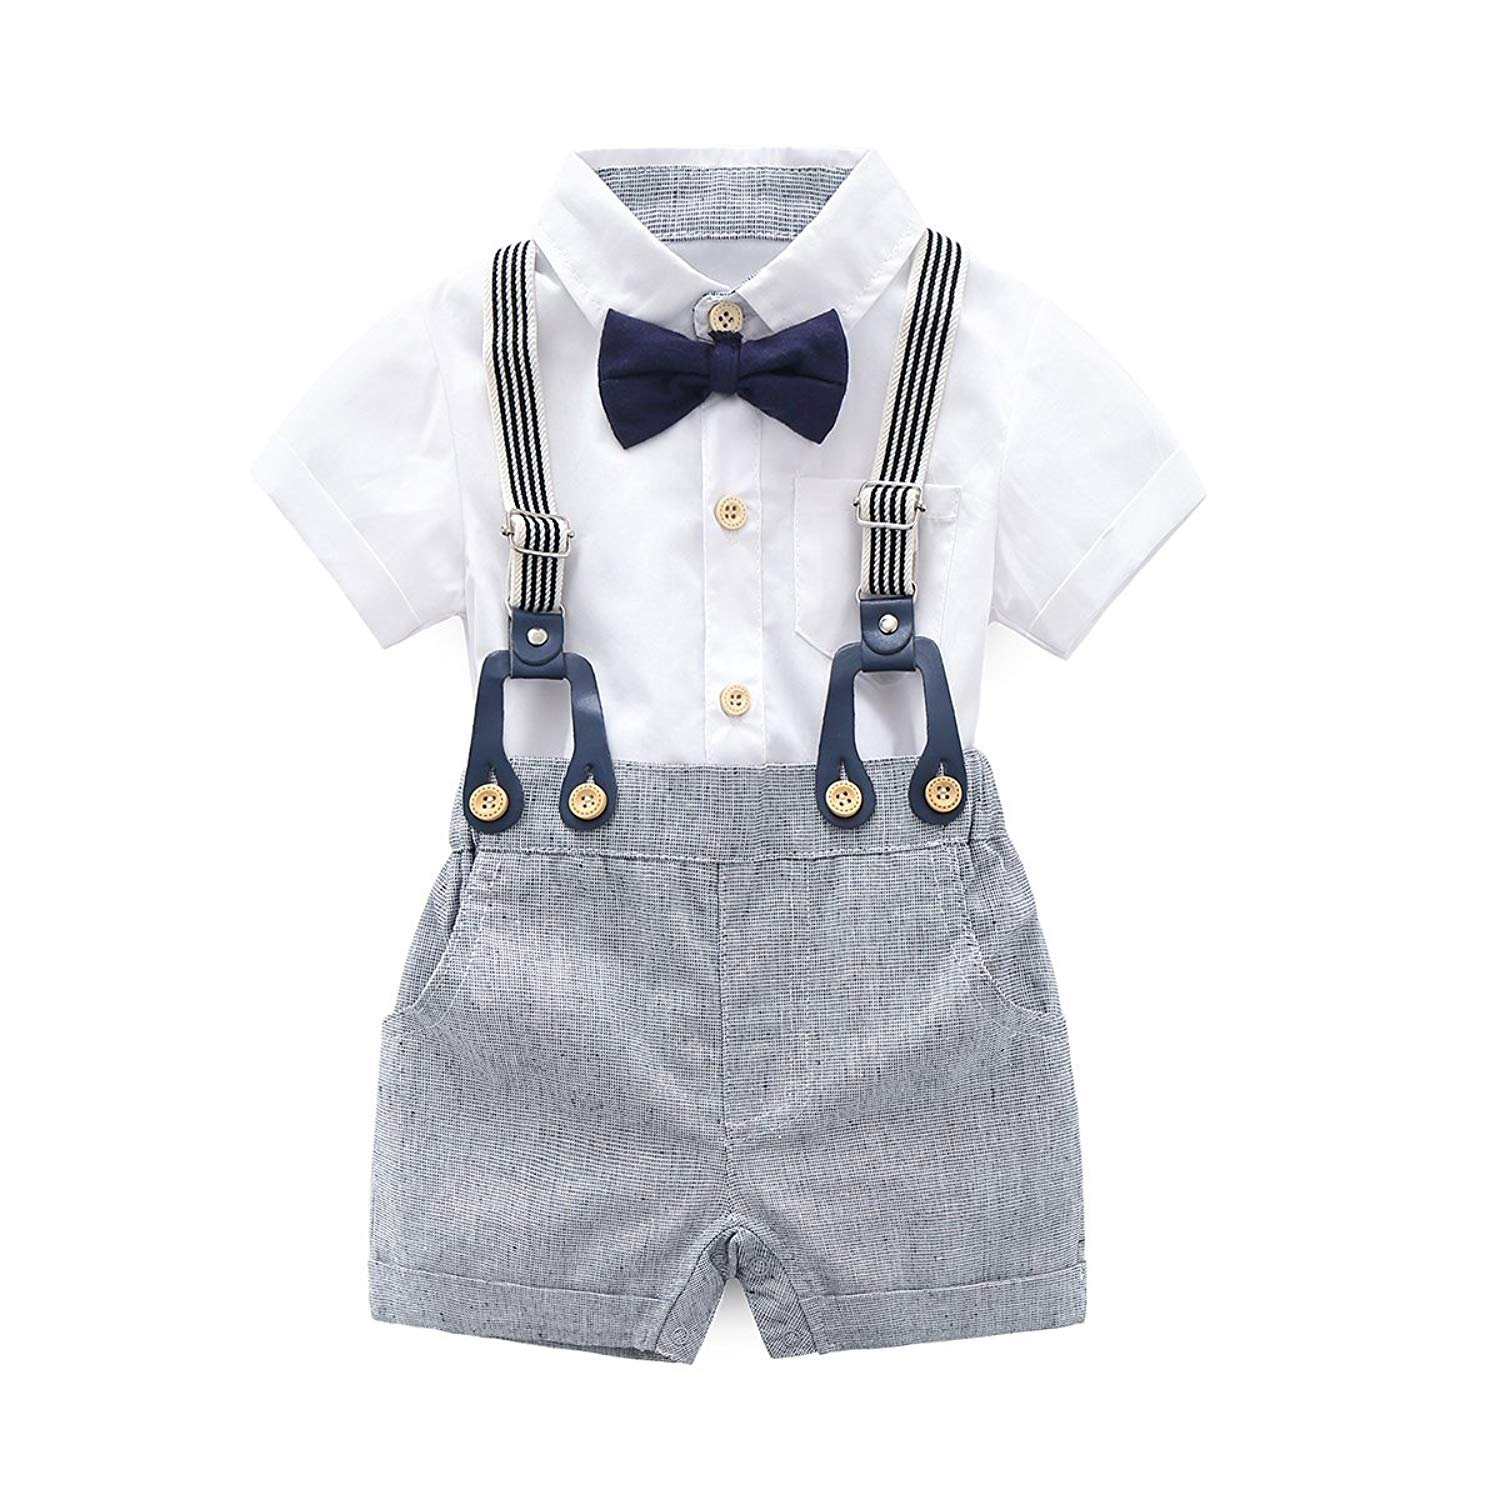 KiKibaby Baby Boys Gentleman White Outfits Suits, Infant Short Sleeve Shirt+Bib Pants+Bow Tie Overalls Clothes Set